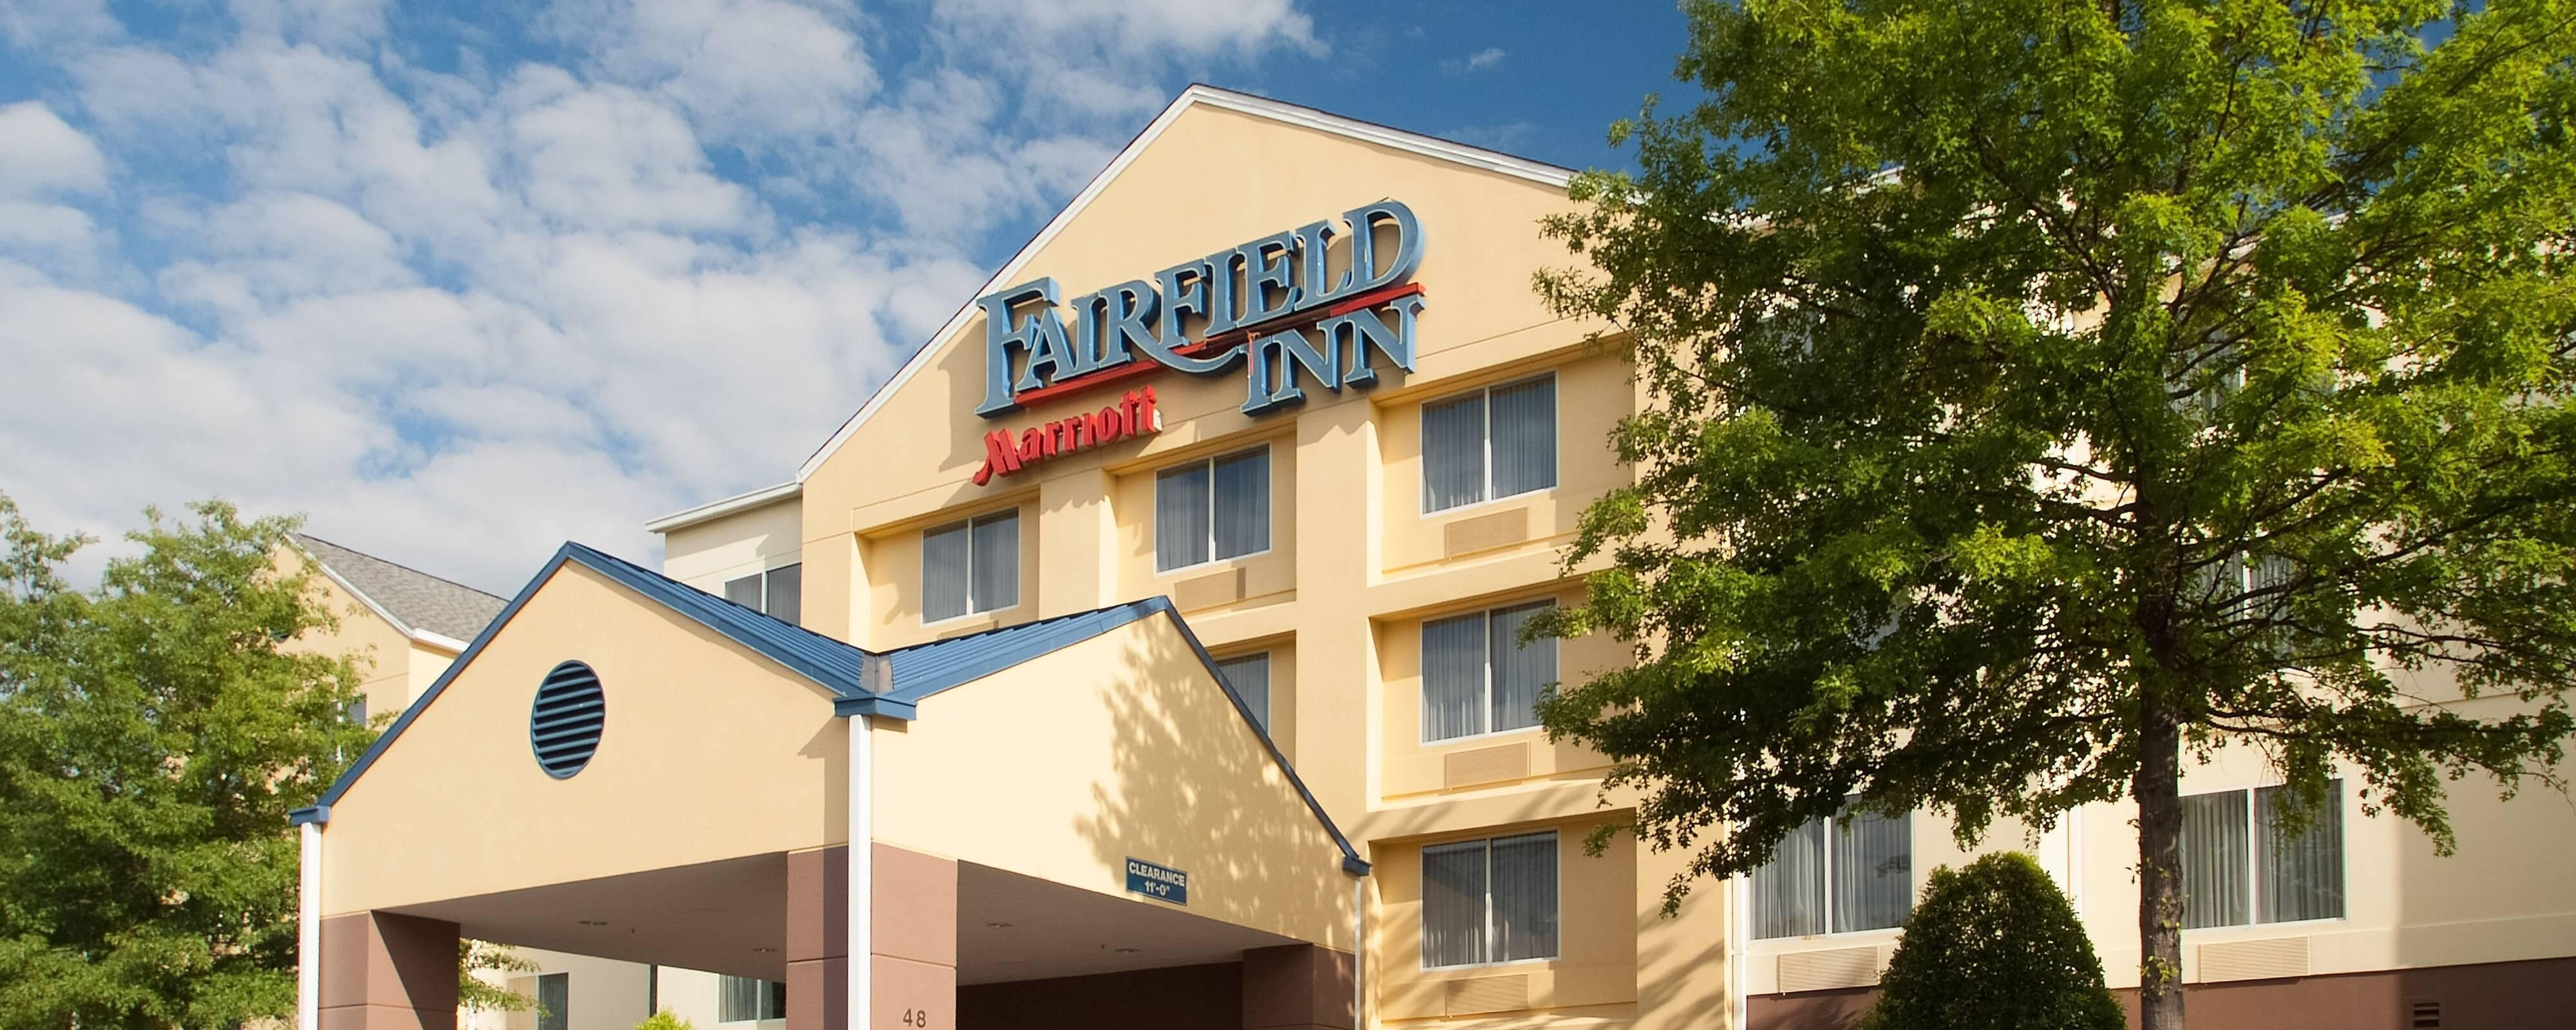 Hotels in Greenville SC